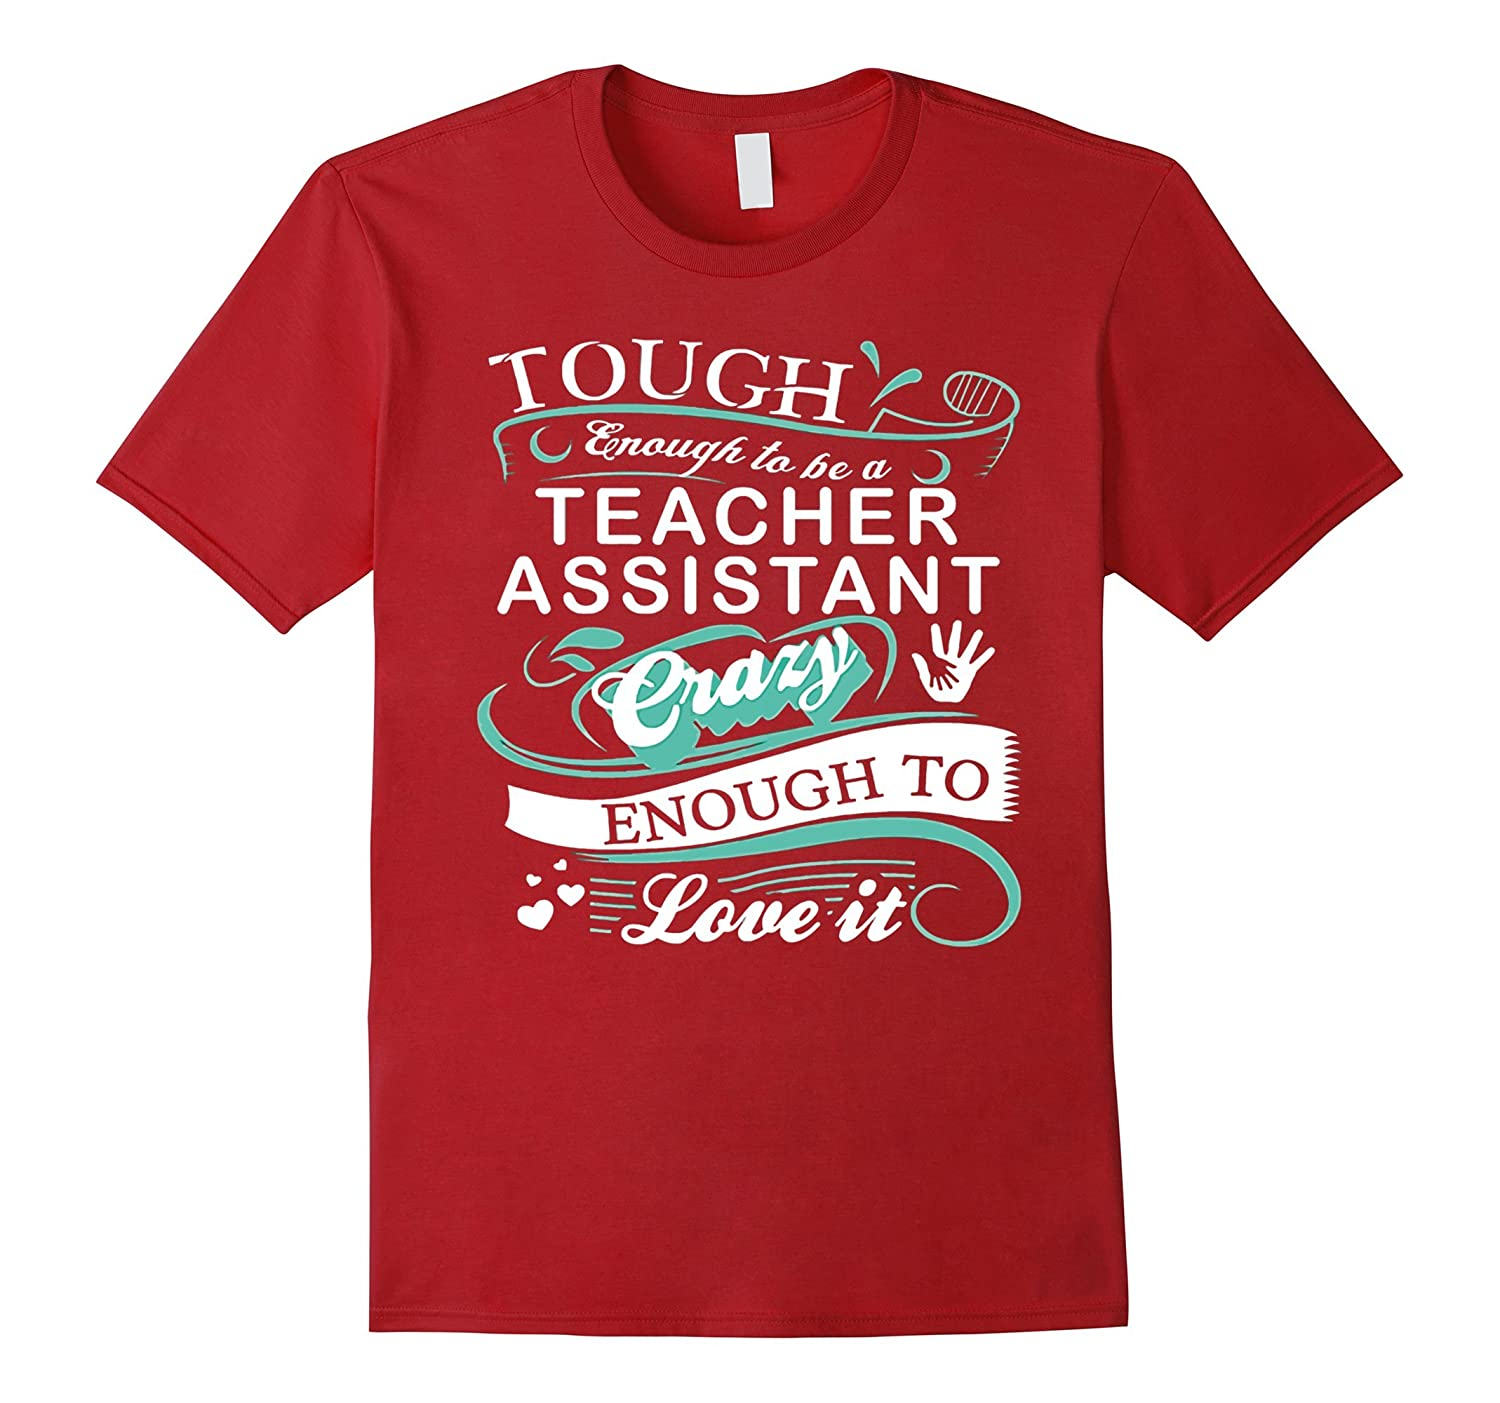 Great Gift T Shirt For Teacher Assistant Funny Quotes Td